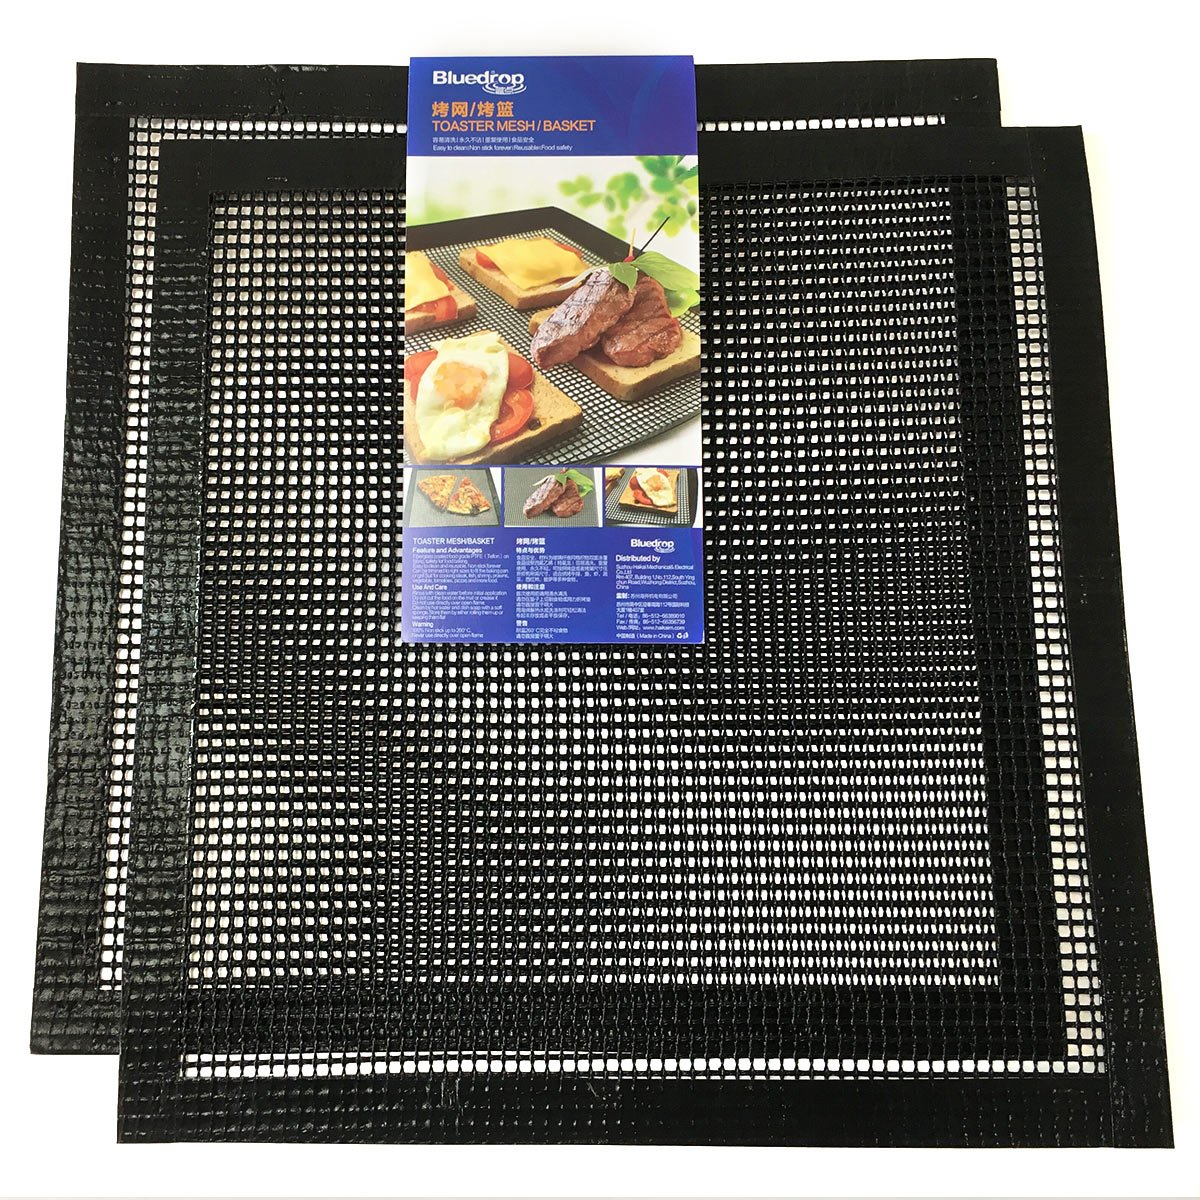 Bluedrop PTFE Open Mesh Crispy Baking Mats Quick Oven Liners Dehydrator Sheets Non Stick Perforated Toaster Meshes Pack of 2 by Bluedrop